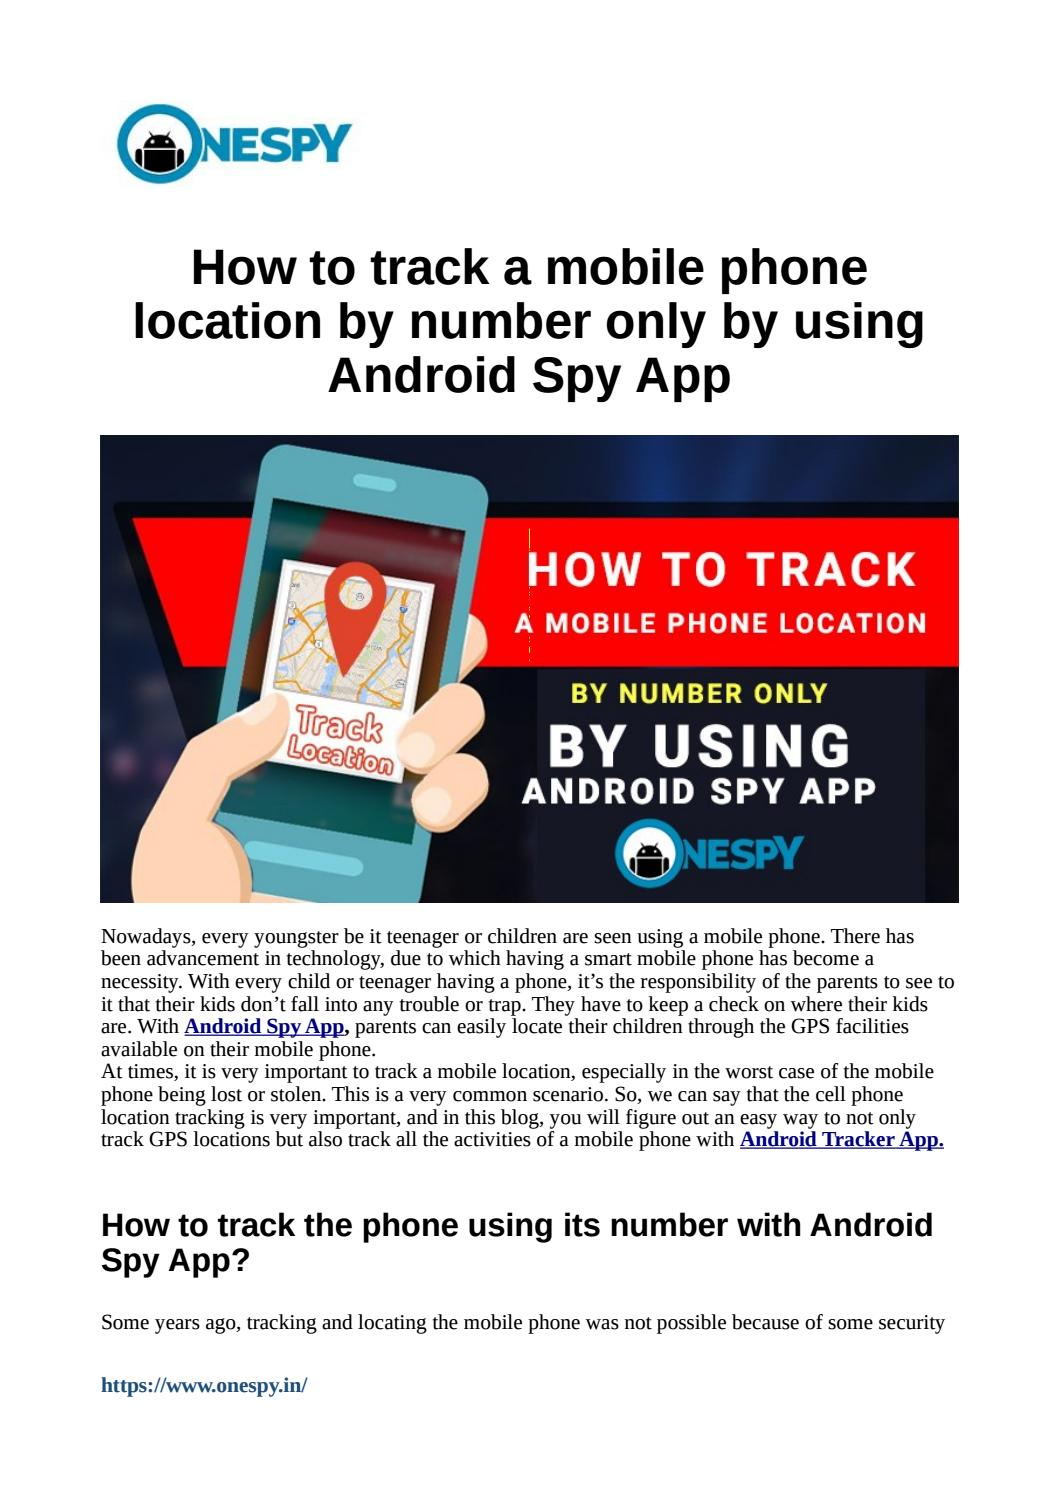 How to track a mobile phone location by number only by using Android